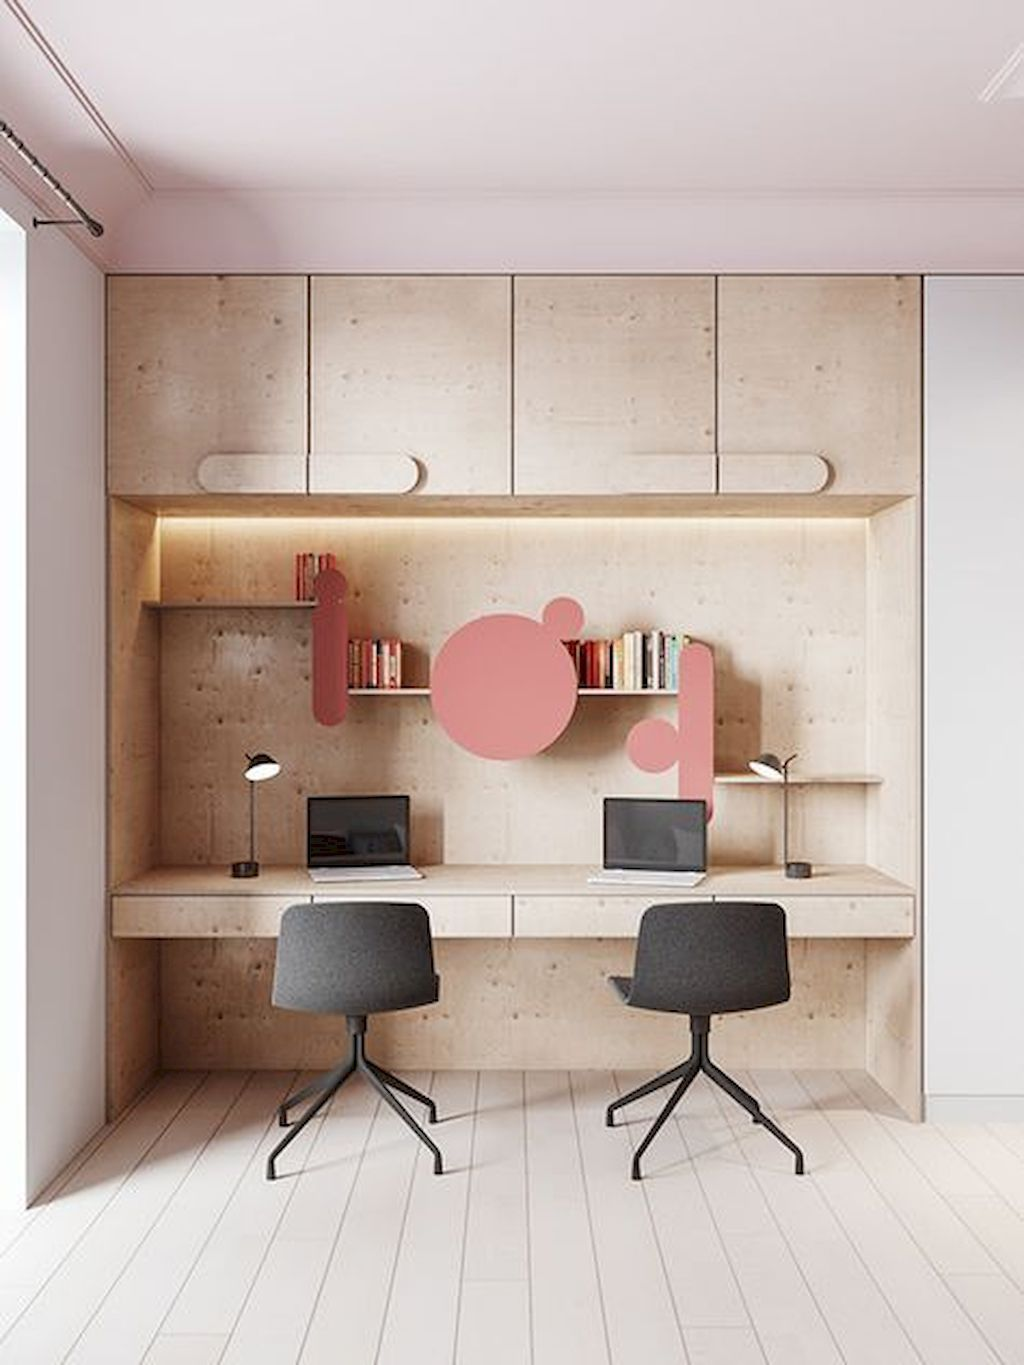 Interior Design Girls Study Room: Clever Workspace Ideas For Small Space 23